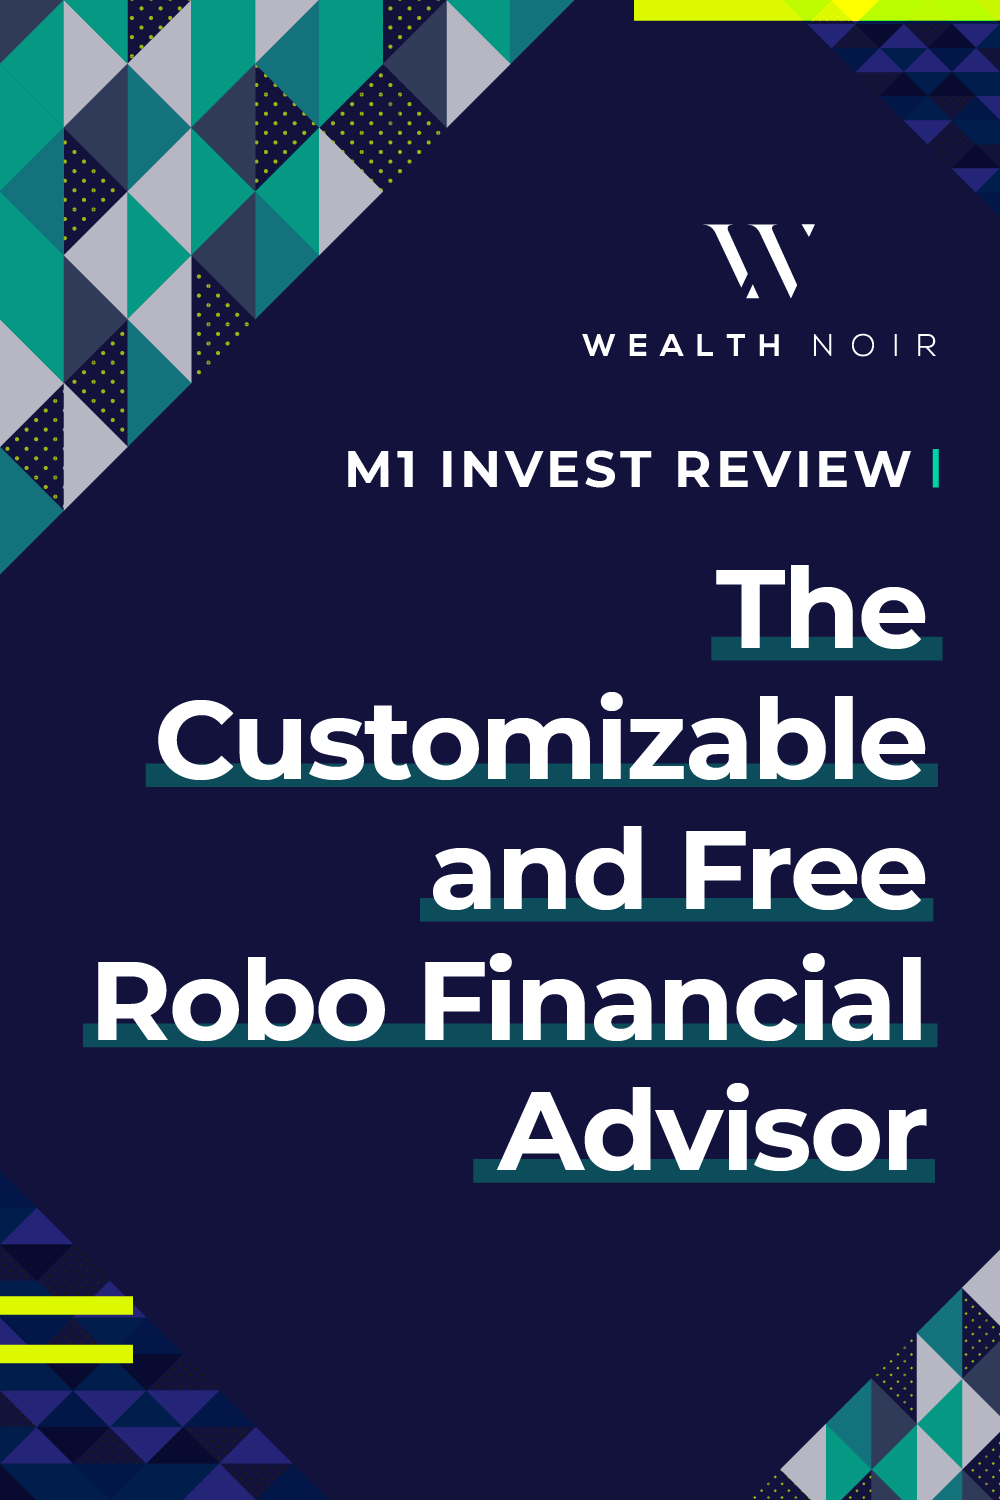 M1 Invest Review: The Customizable and Free Robo Financial Advisor